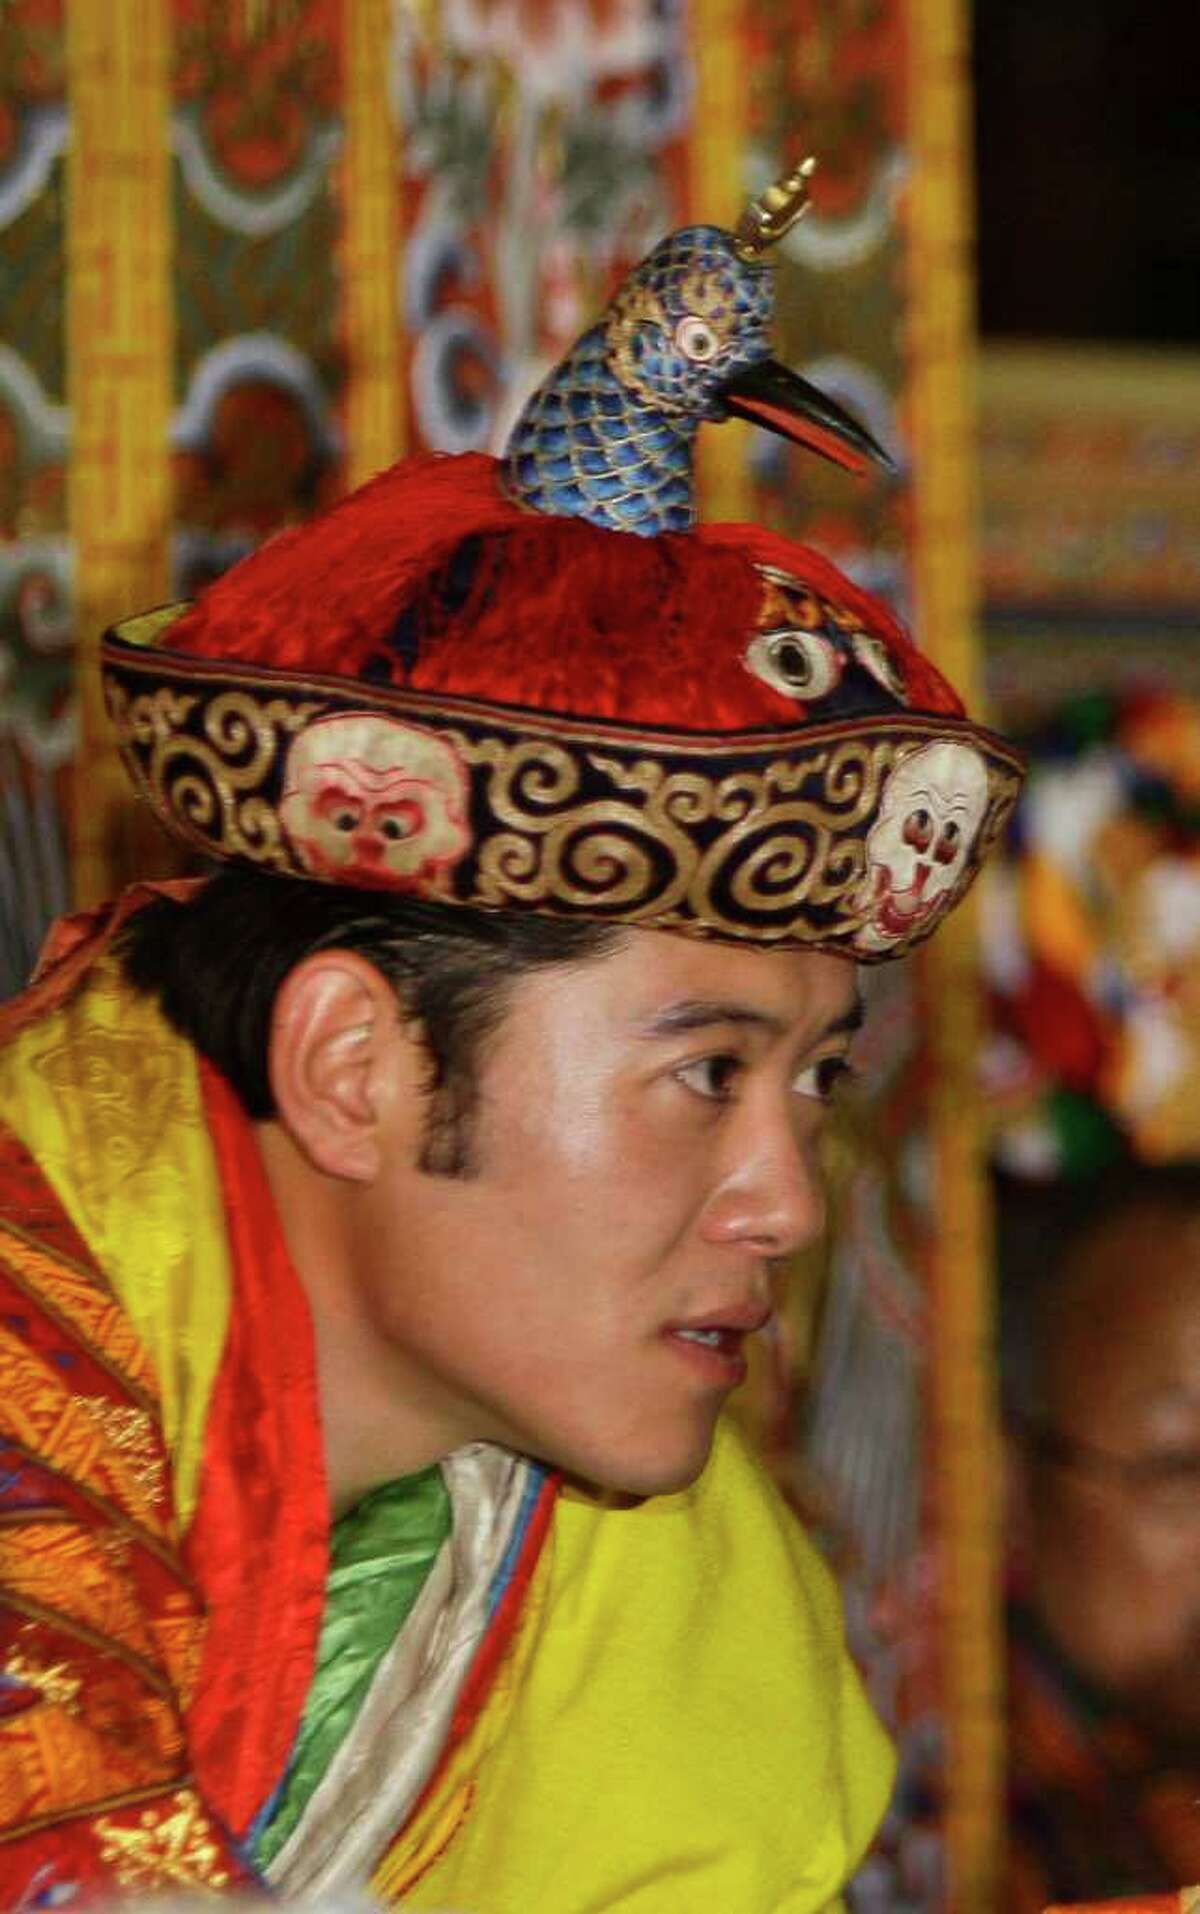 Bhutan's Fifth King Jigme Khesar Namgyel Wangchuk Perfect role: Michael Cera's character Nick Twist in Youth in Revolt.